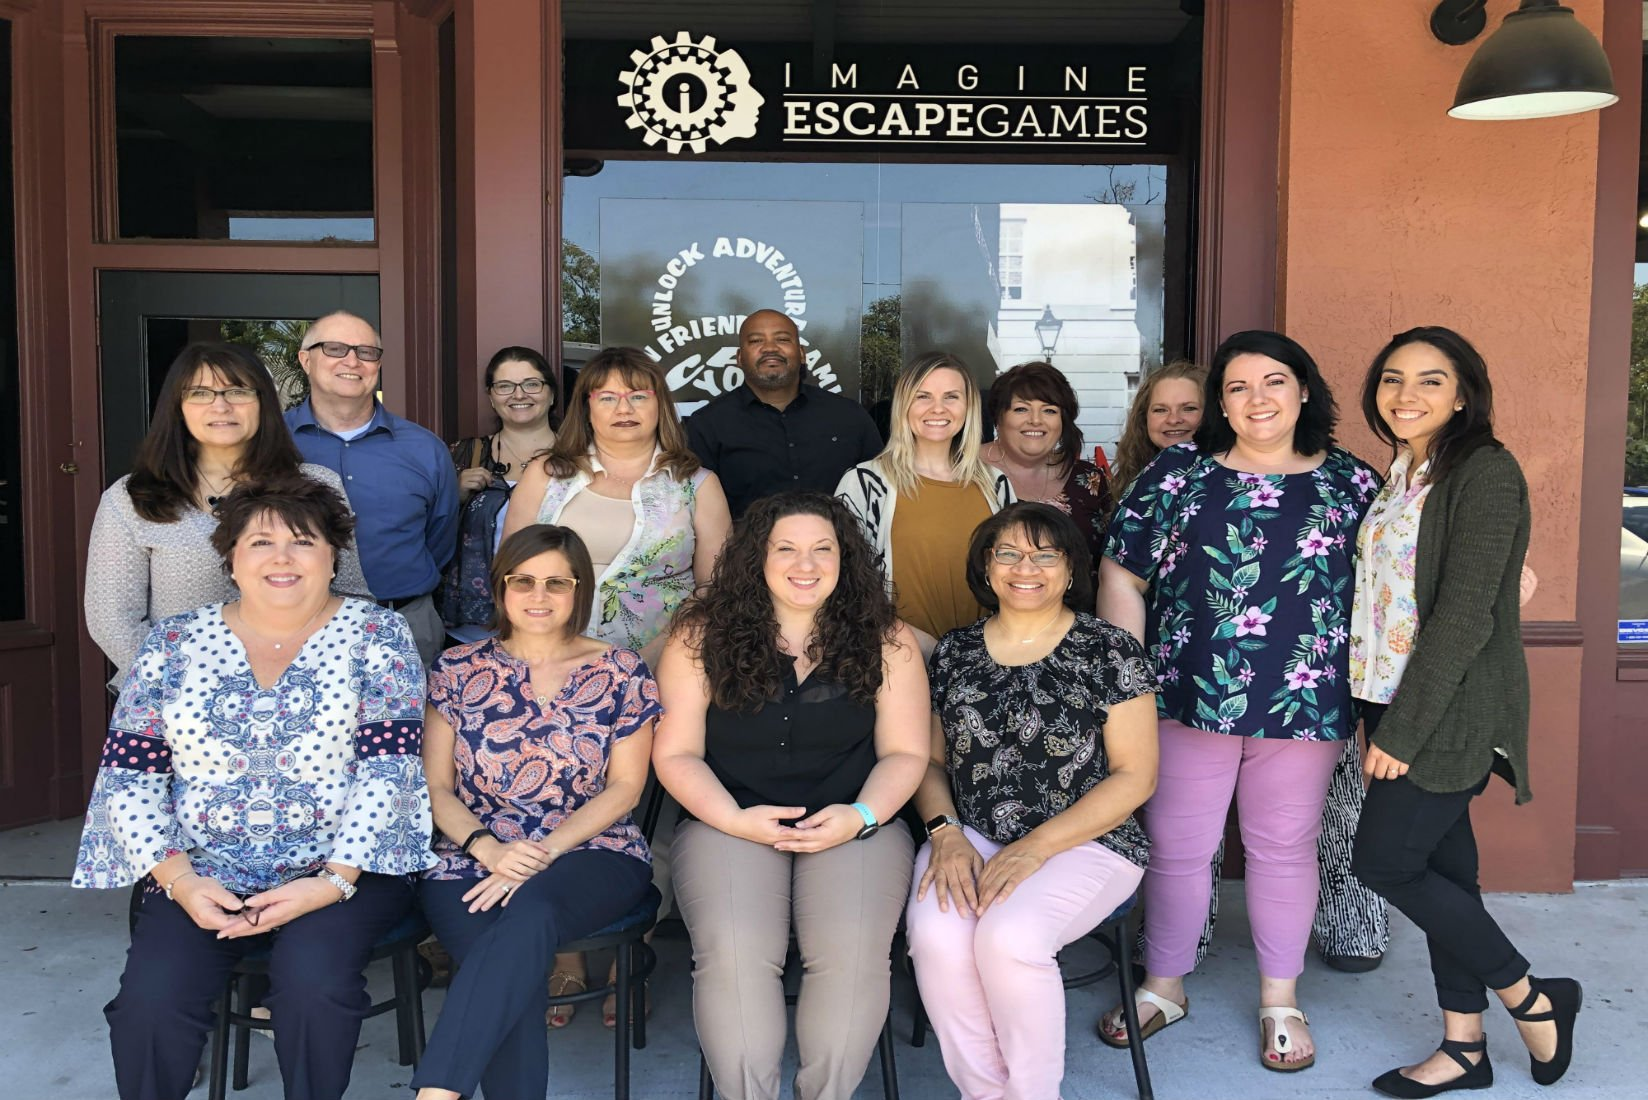 BBDG professionals celebrated Administrative Professionals Day 2019